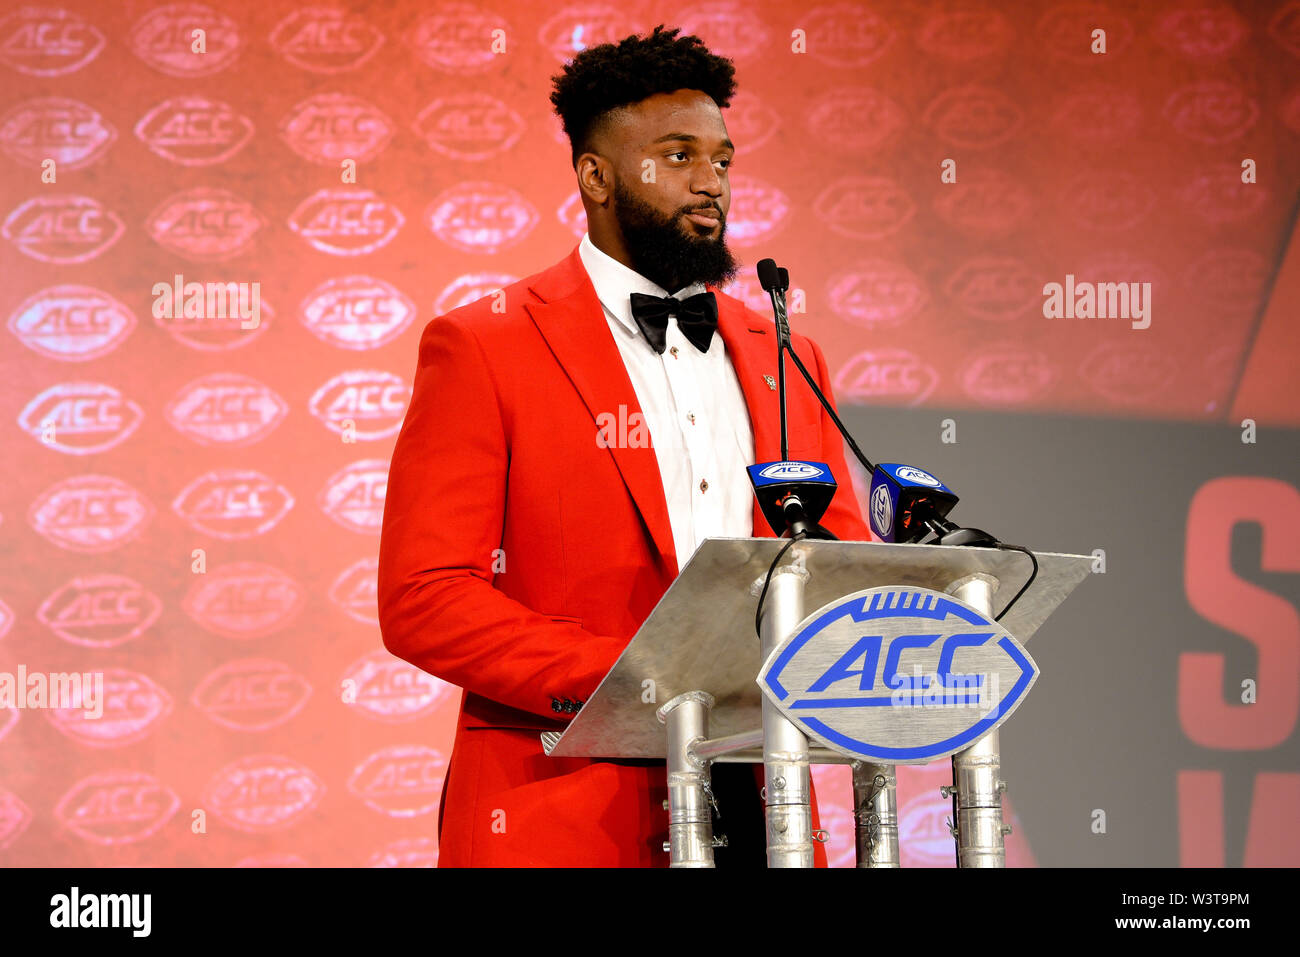 Charlotte, North Carolina, USA. 17th July, 2019. NC State JAMES SMITH-WILLIAMS (De) speaking to reporters during the ACC Atlantic Division Coach/Student interviews on July 17, 2019 at the Westin Hotels & Resorts in Charlotte, N.C. Credit: Ed Clemente/ZUMA Wire/Alamy Live News - Stock Image